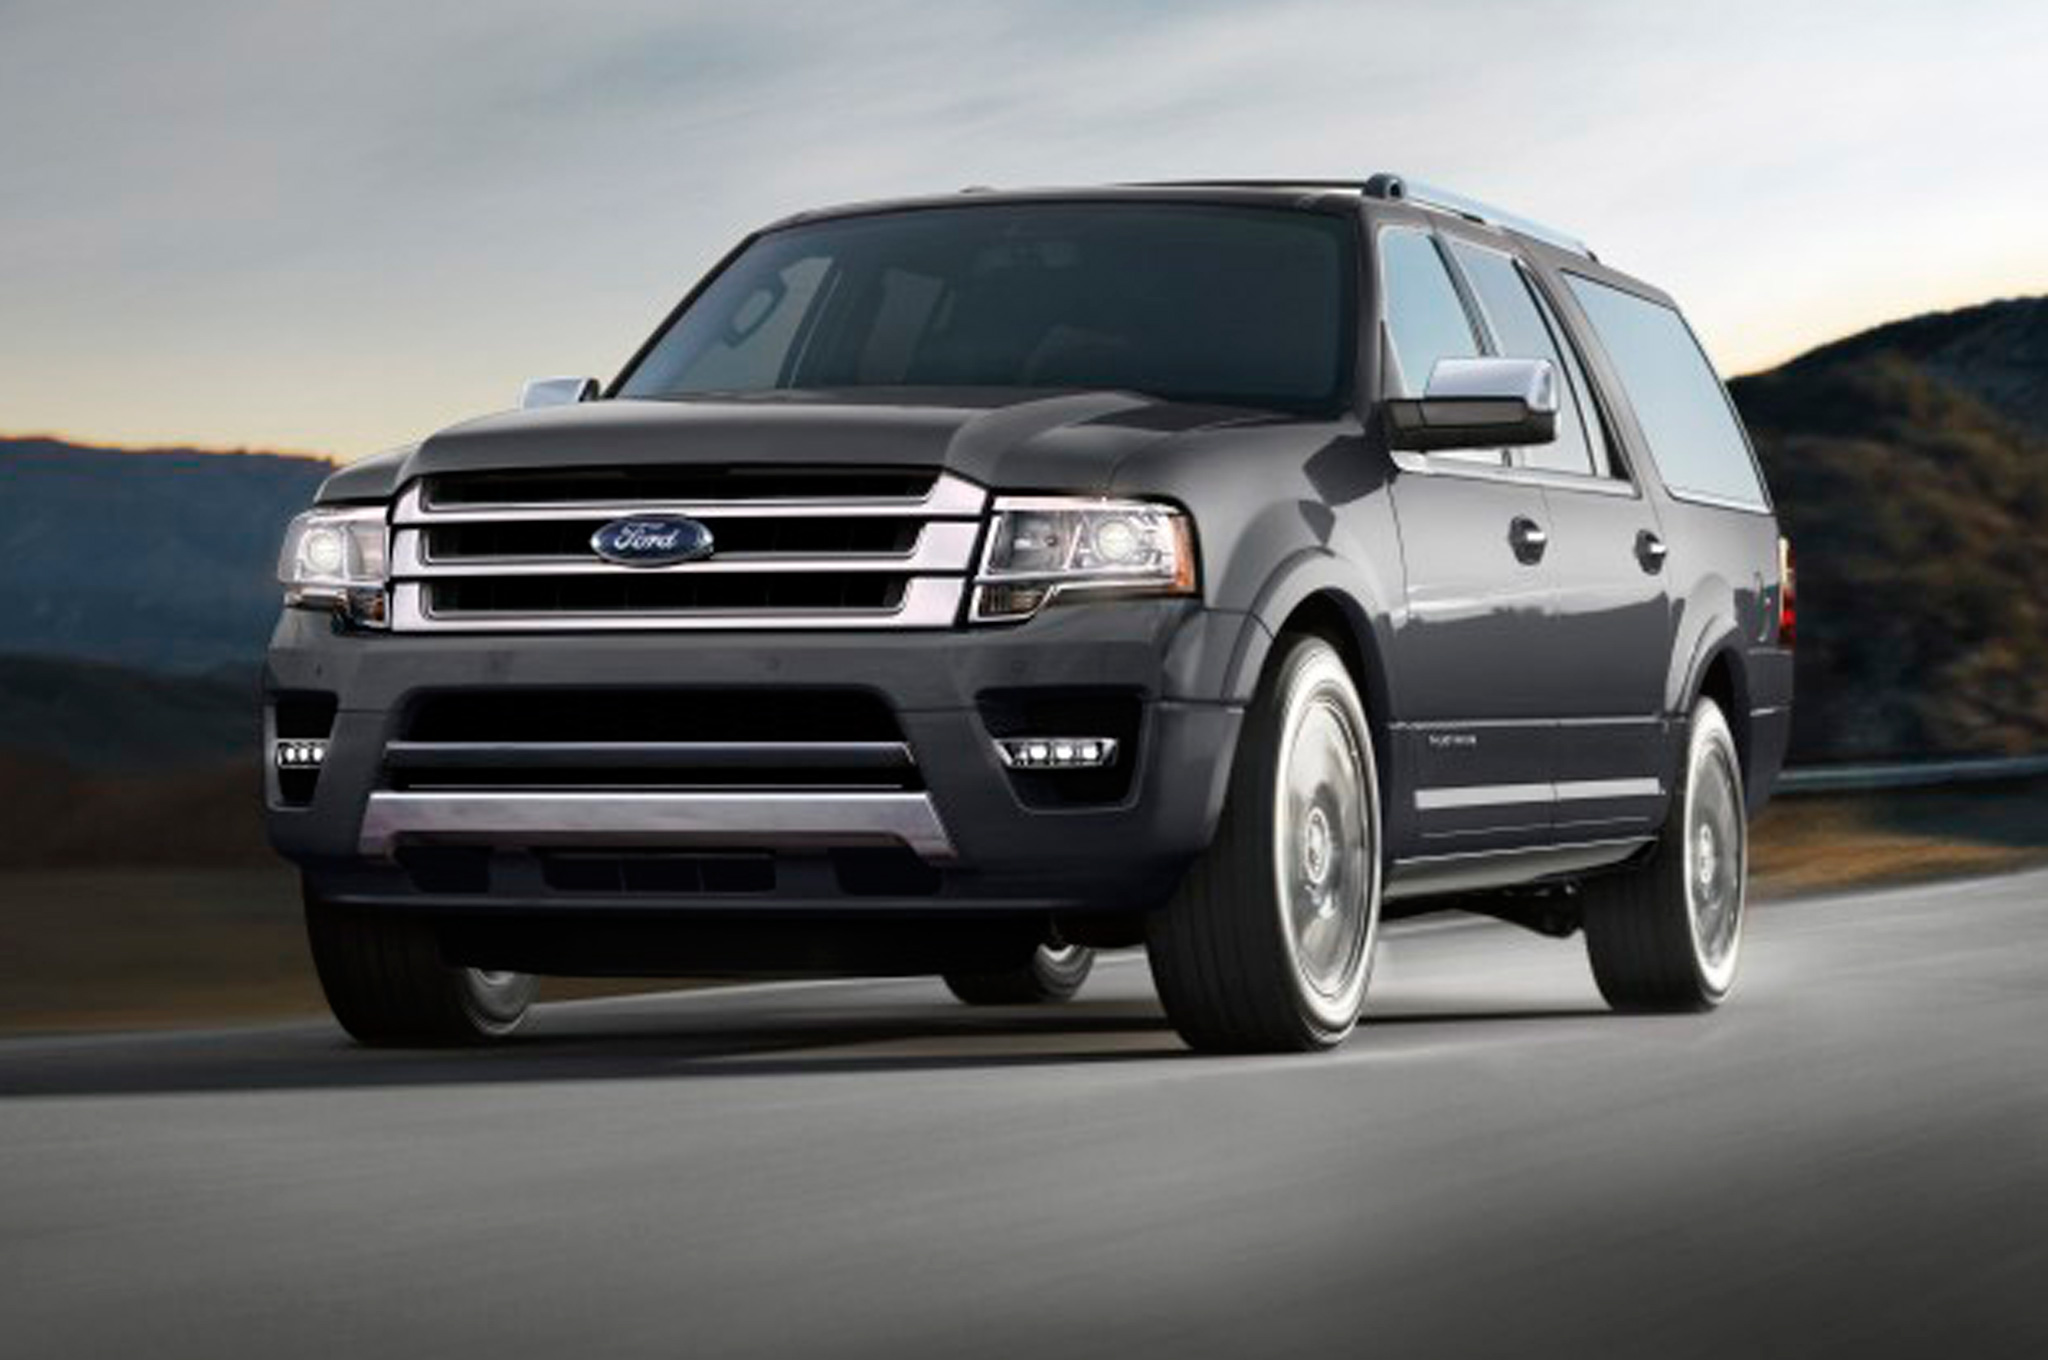 2015 Ford Expedition #5